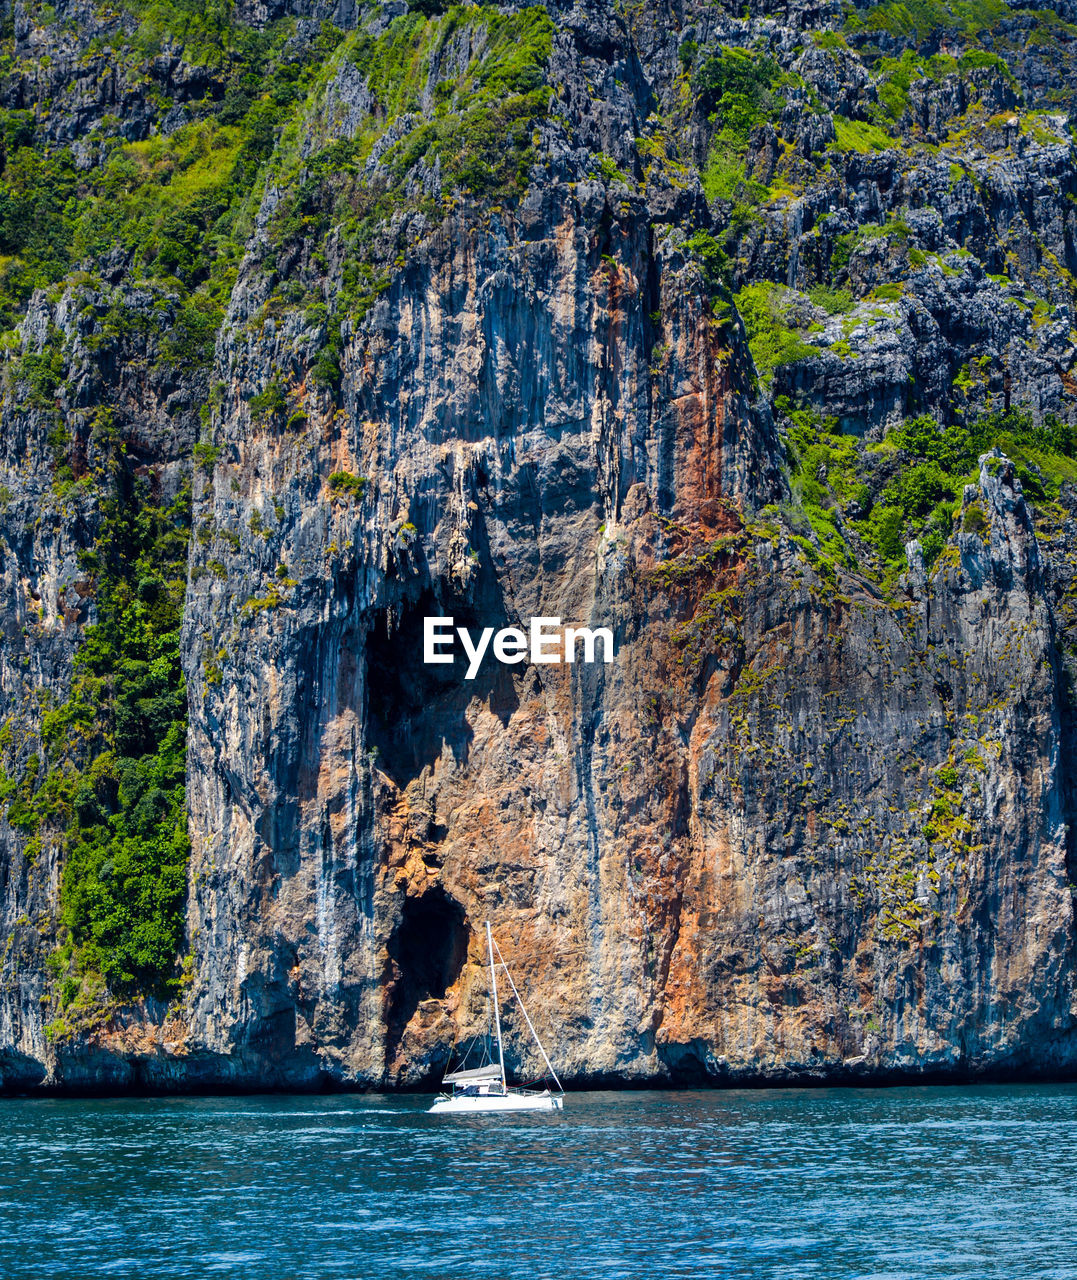 water, sea, rock, rock - object, solid, cliff, rock formation, nature, land, day, scenics - nature, outdoors, beauty in nature, no people, nautical vessel, tranquility, waterfront, tranquil scene, beach, formation